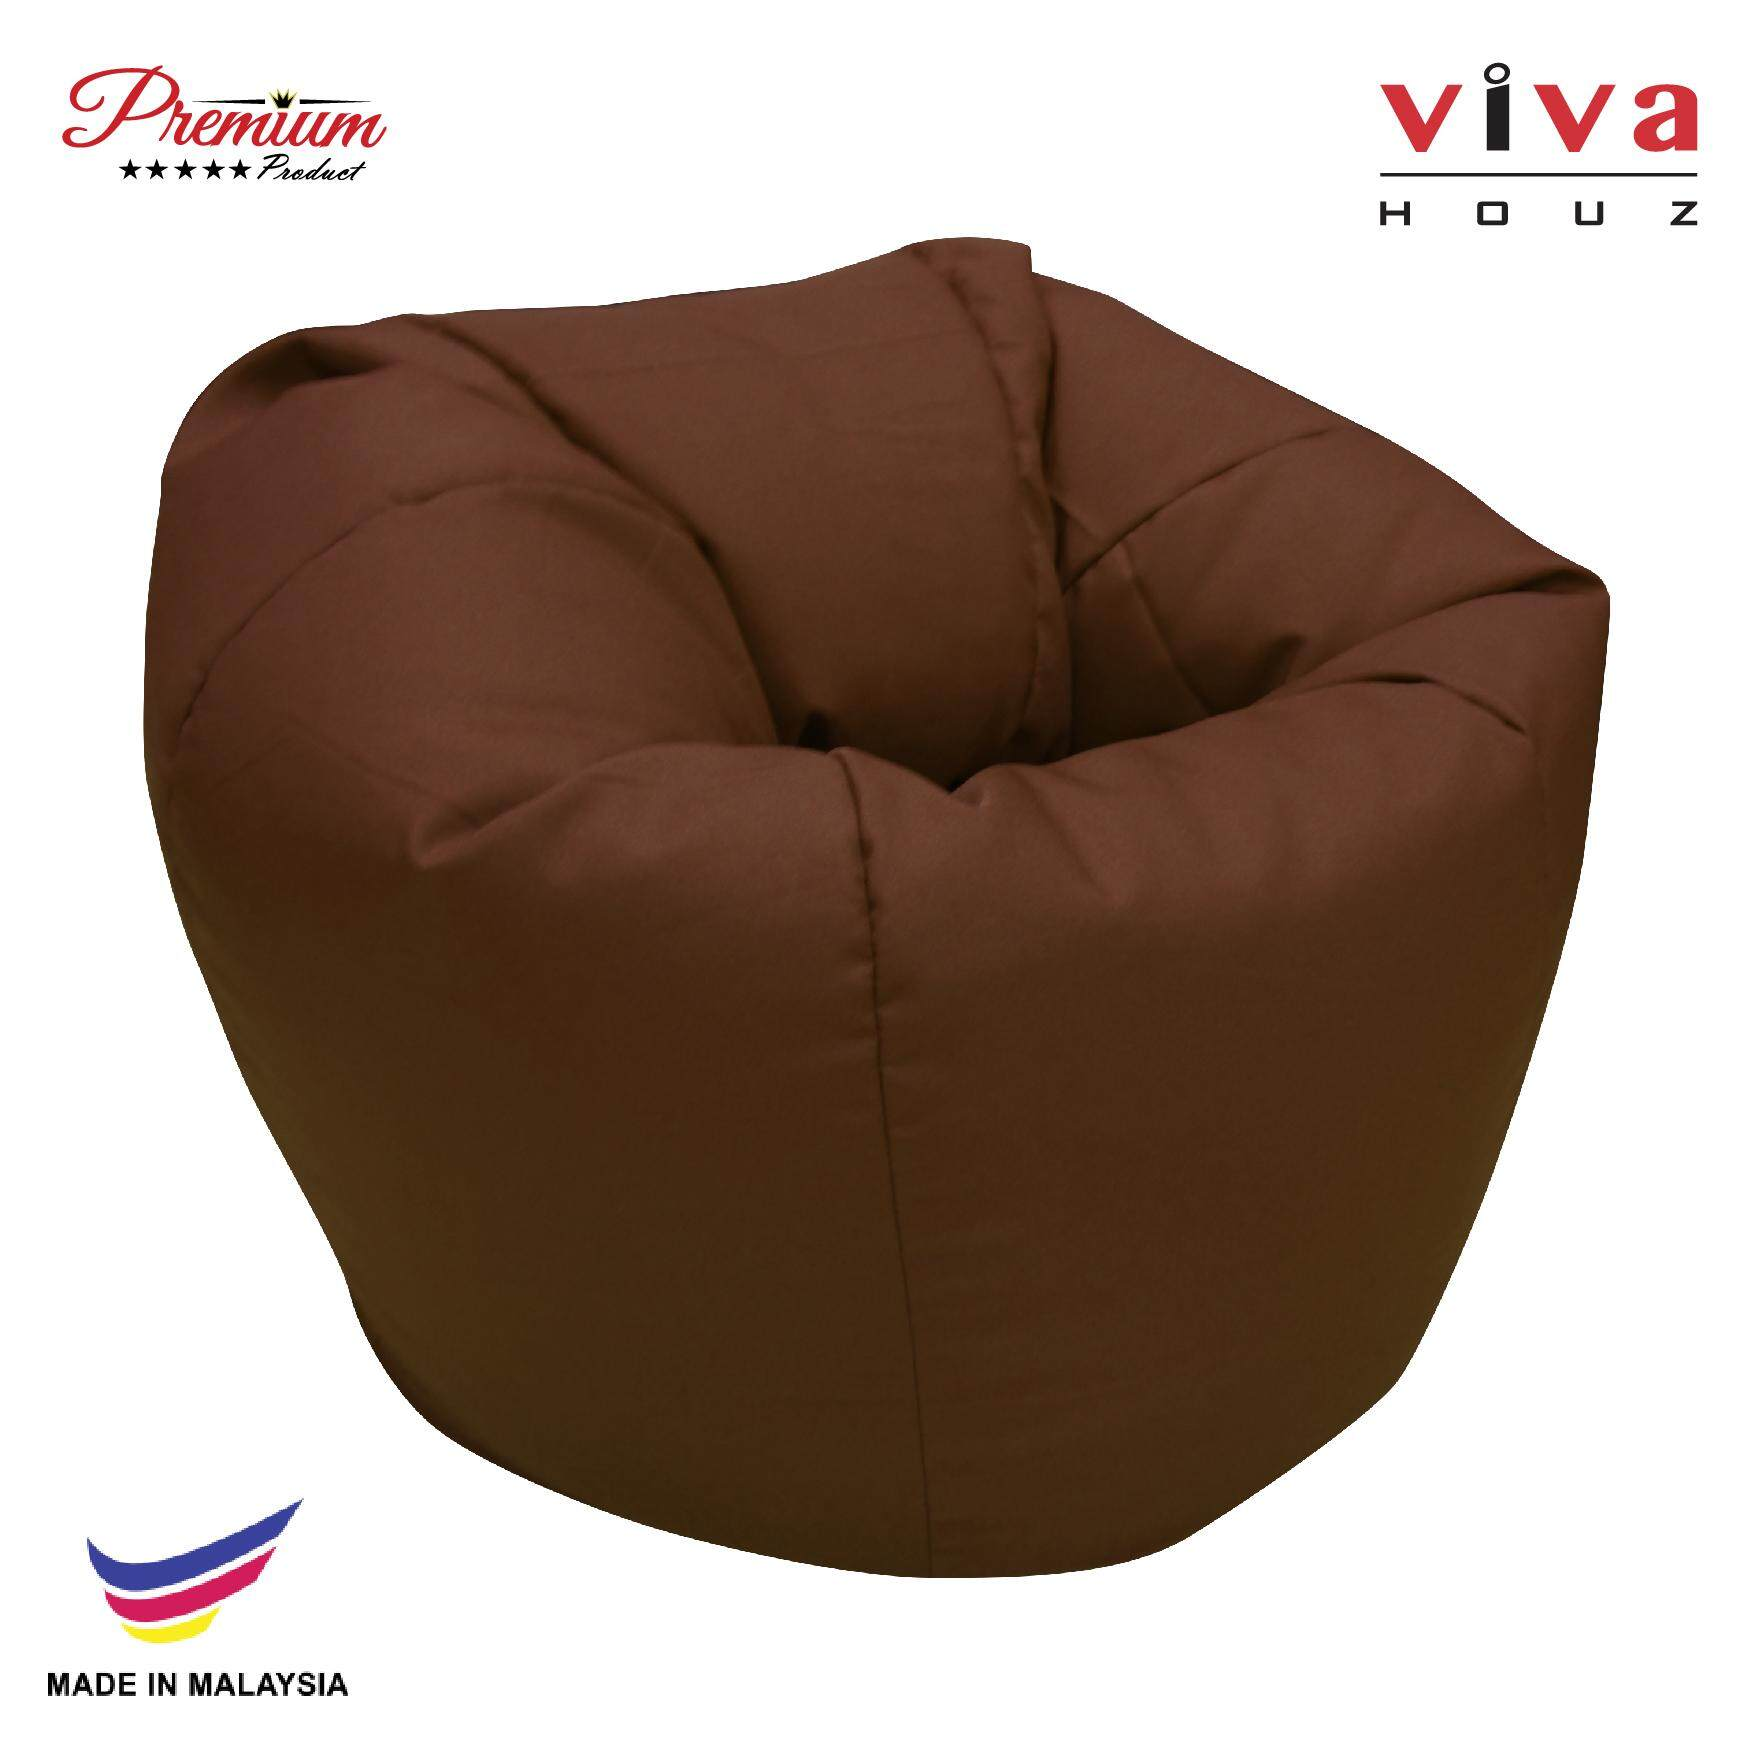 Hot Selling : Perfect Bean Bag Sofa Pouffe Chair L Size Dark Brown Made In Malaysia By Viva Living.